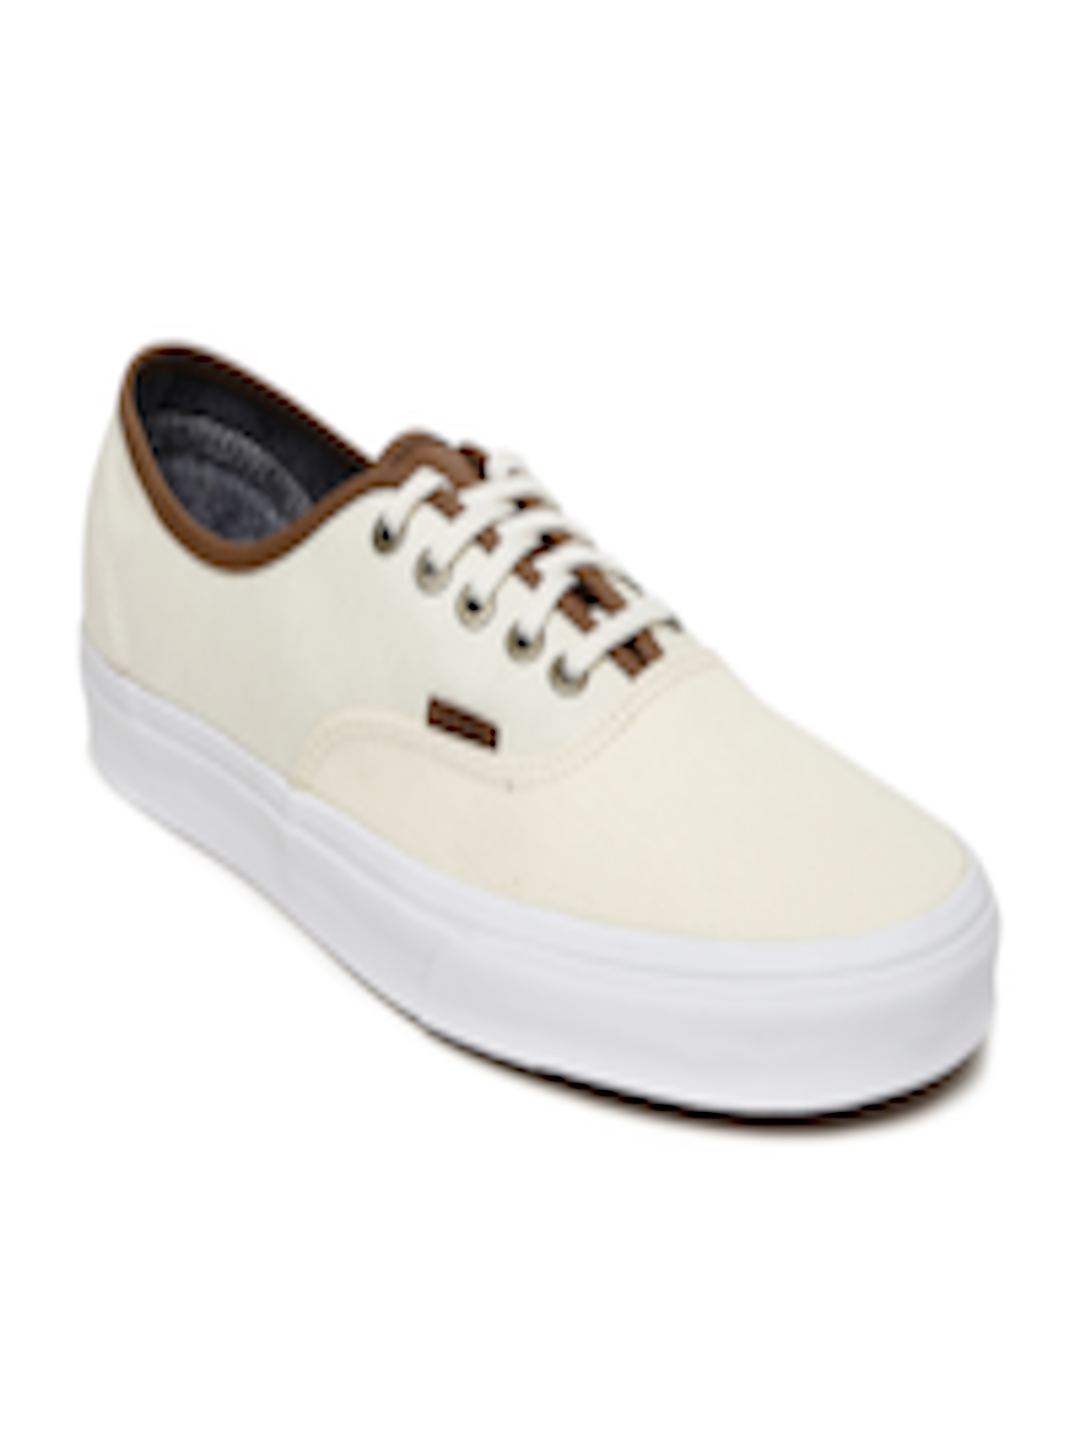 b43085cc422e19 Buy Vans Unisex Cream Coloured Authentic Sneakers - Casual Shoes for ...